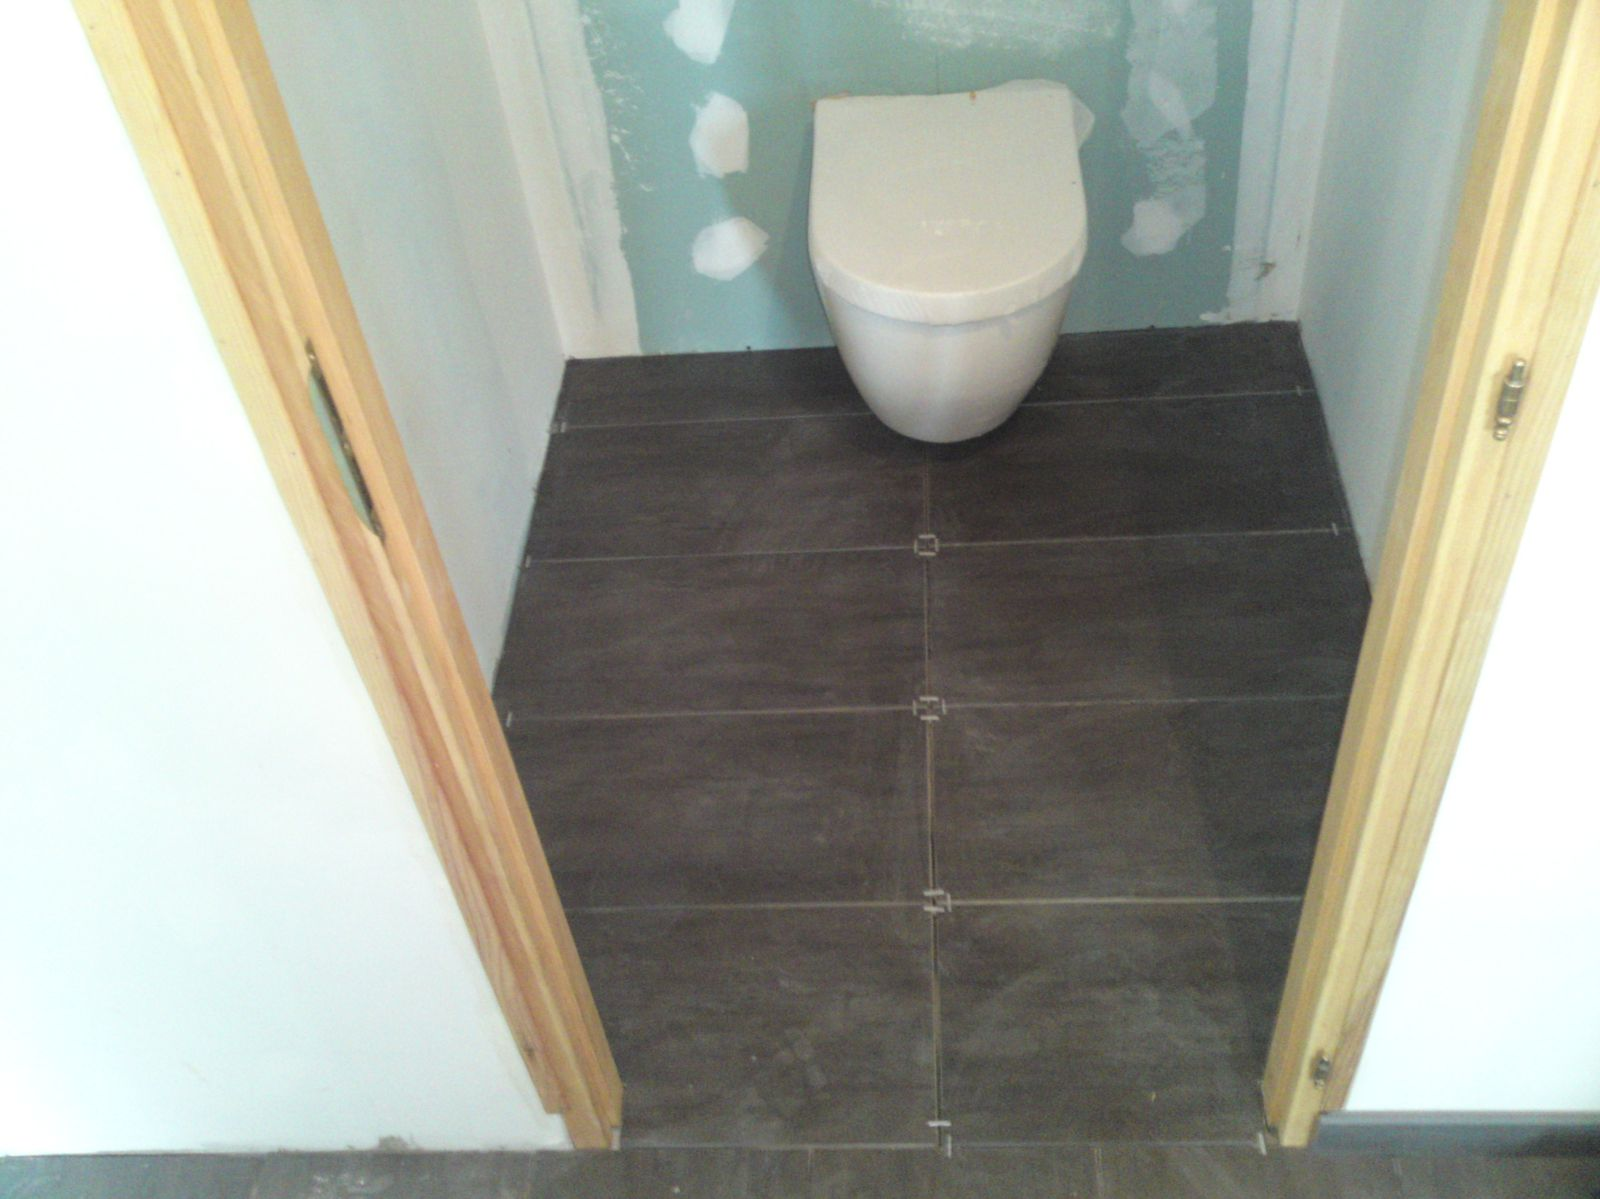 Modele de carrelage pour wc for Modele carrelage sol